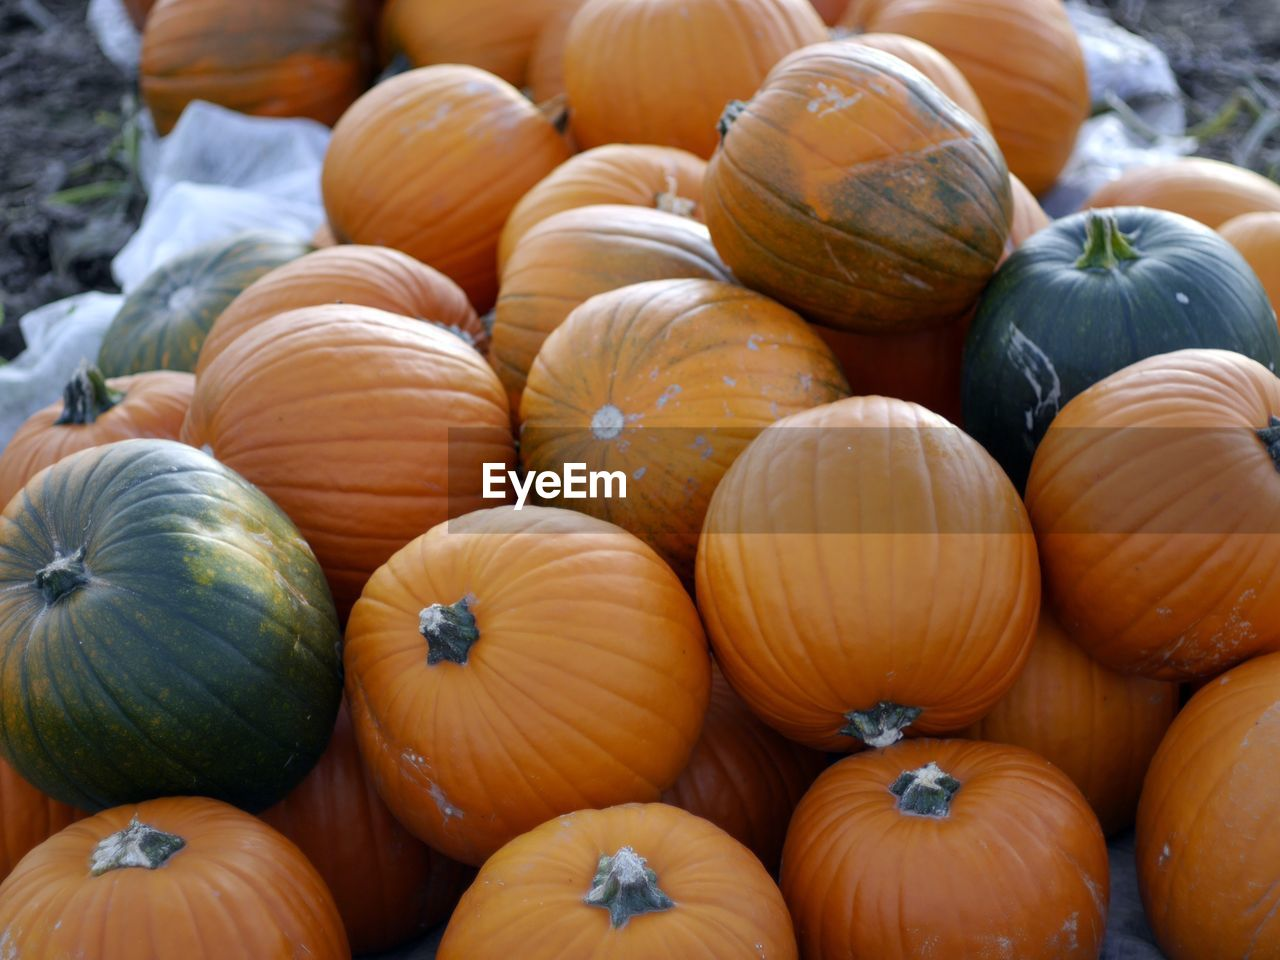 food and drink, food, freshness, healthy eating, wellbeing, vegetable, pumpkin, market, for sale, large group of objects, no people, retail, still life, high angle view, orange color, market stall, abundance, close-up, day, full frame, outdoors, retail display, sale, vegetarian food, ripe